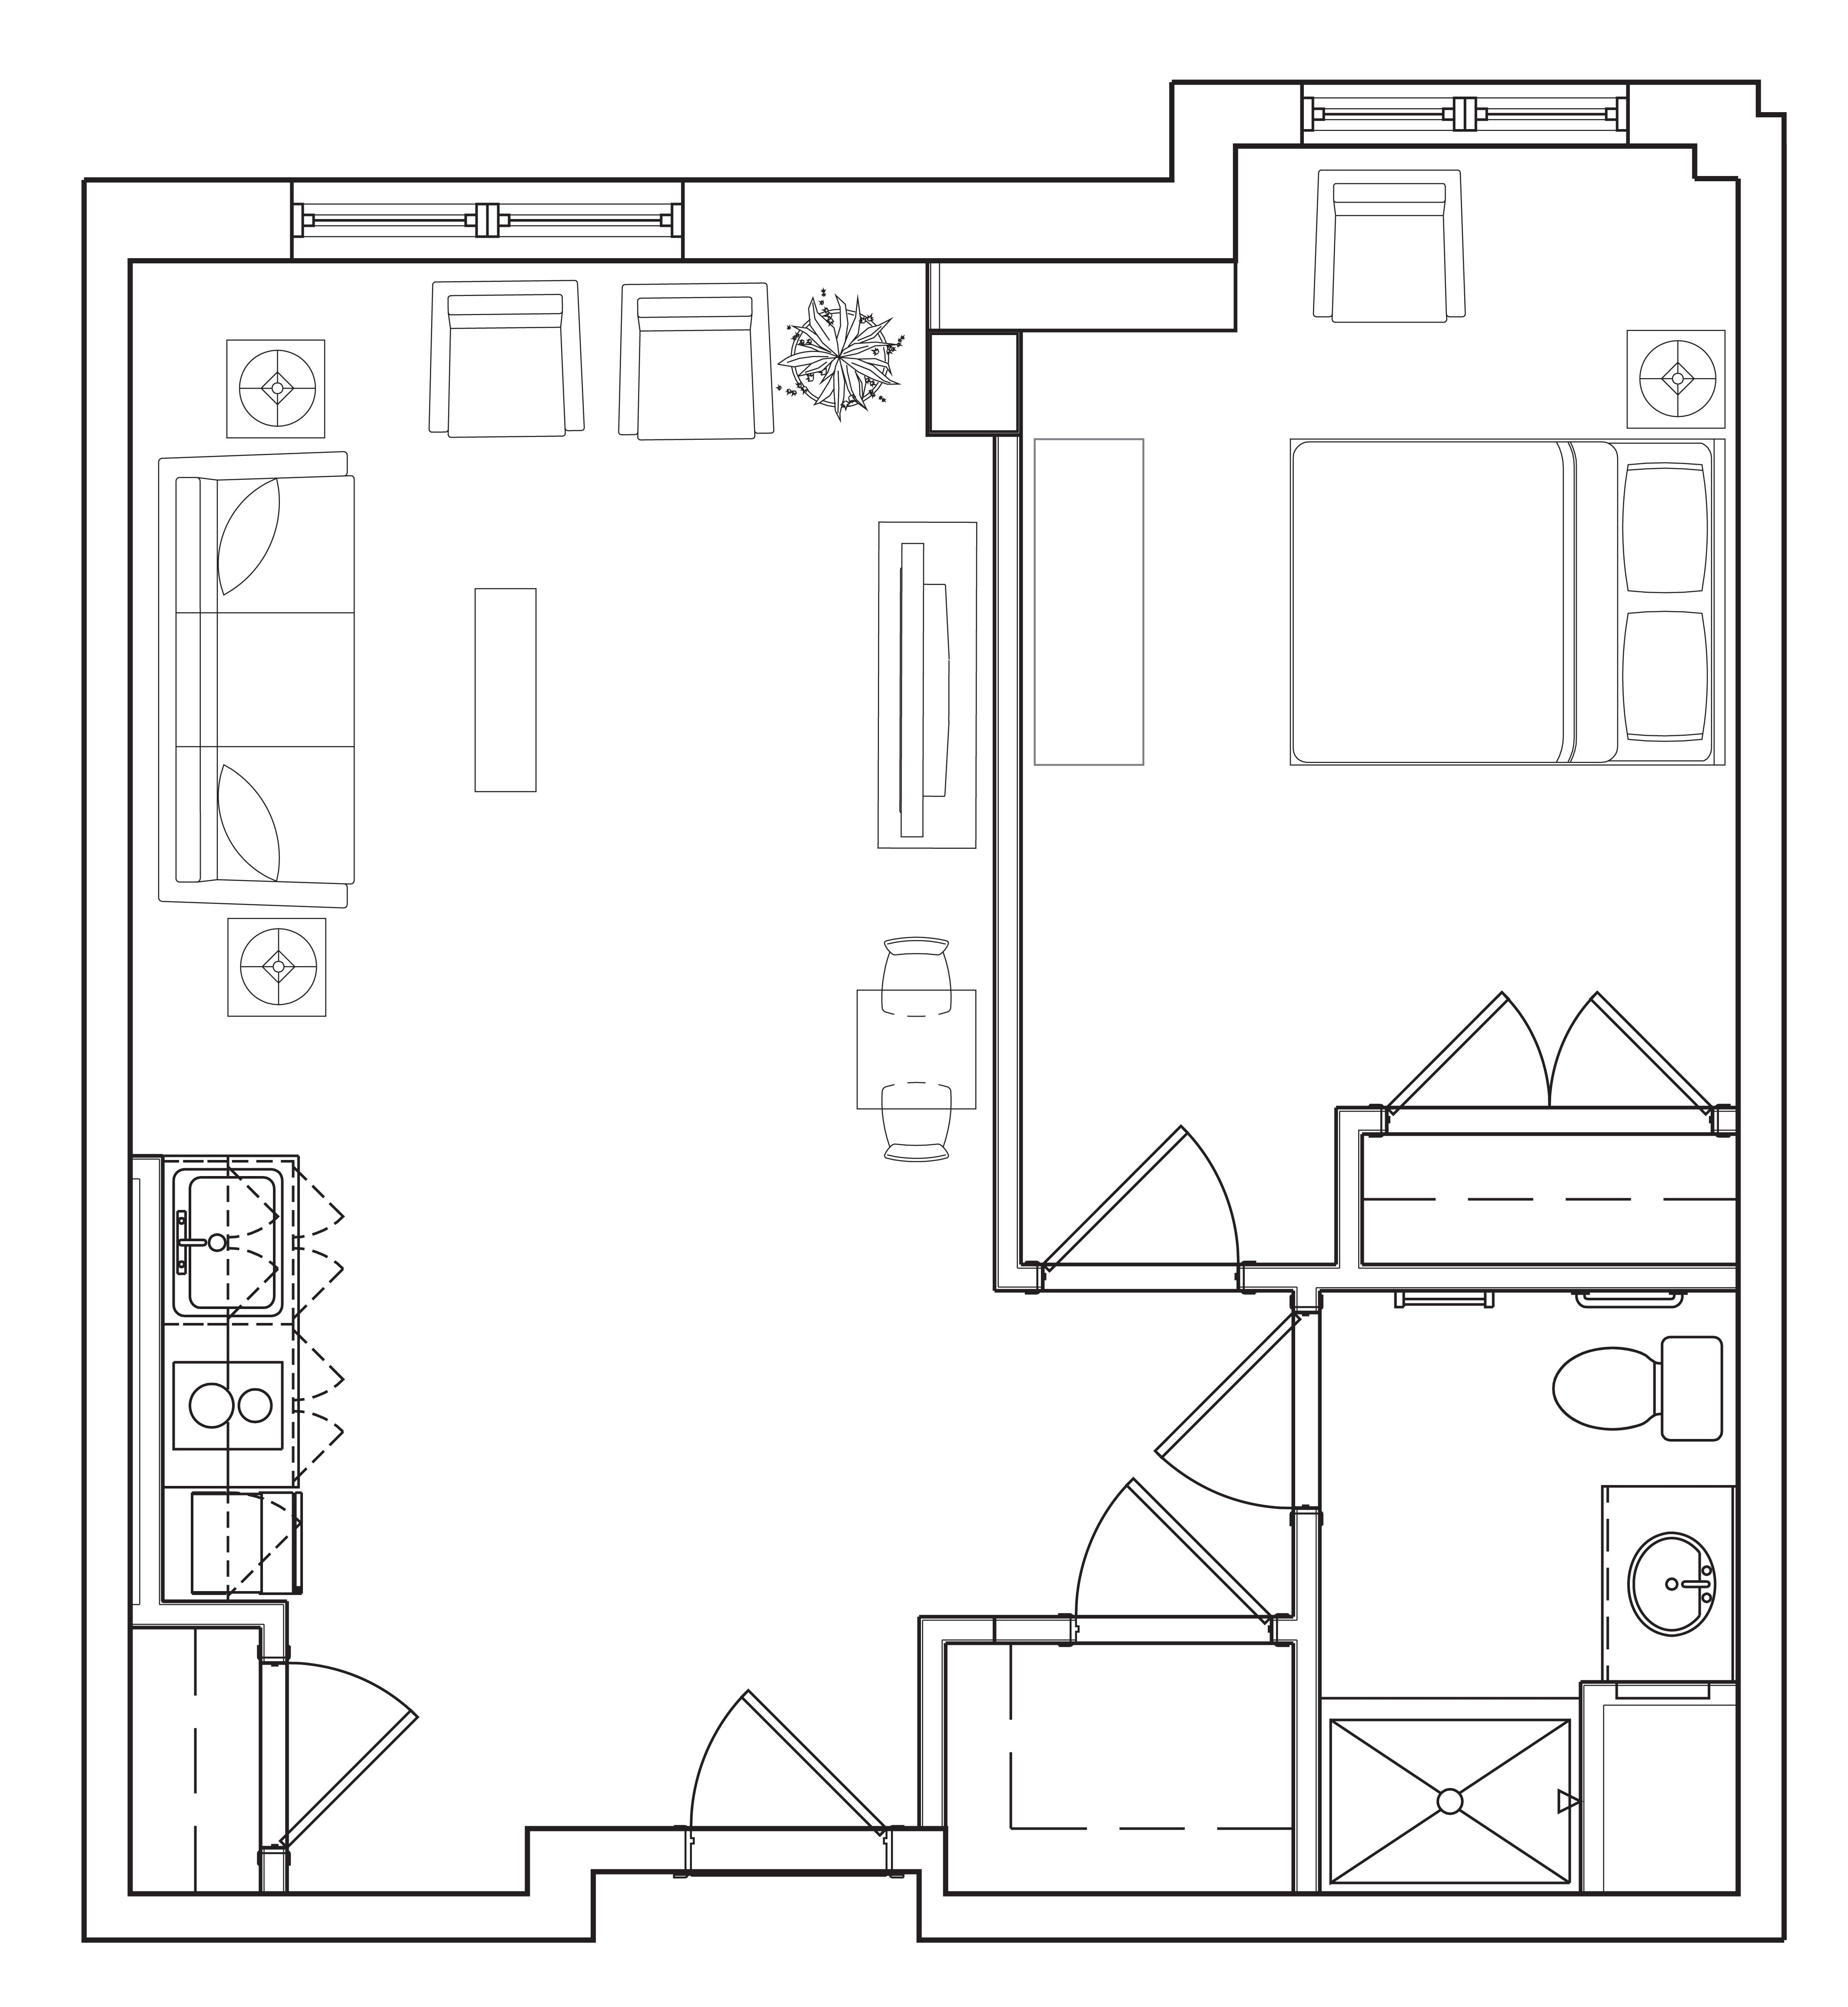 Amusing Design Of The Simple Floor Plans With Single Bedroom Added With Living Room Beside The Kitchen Areas